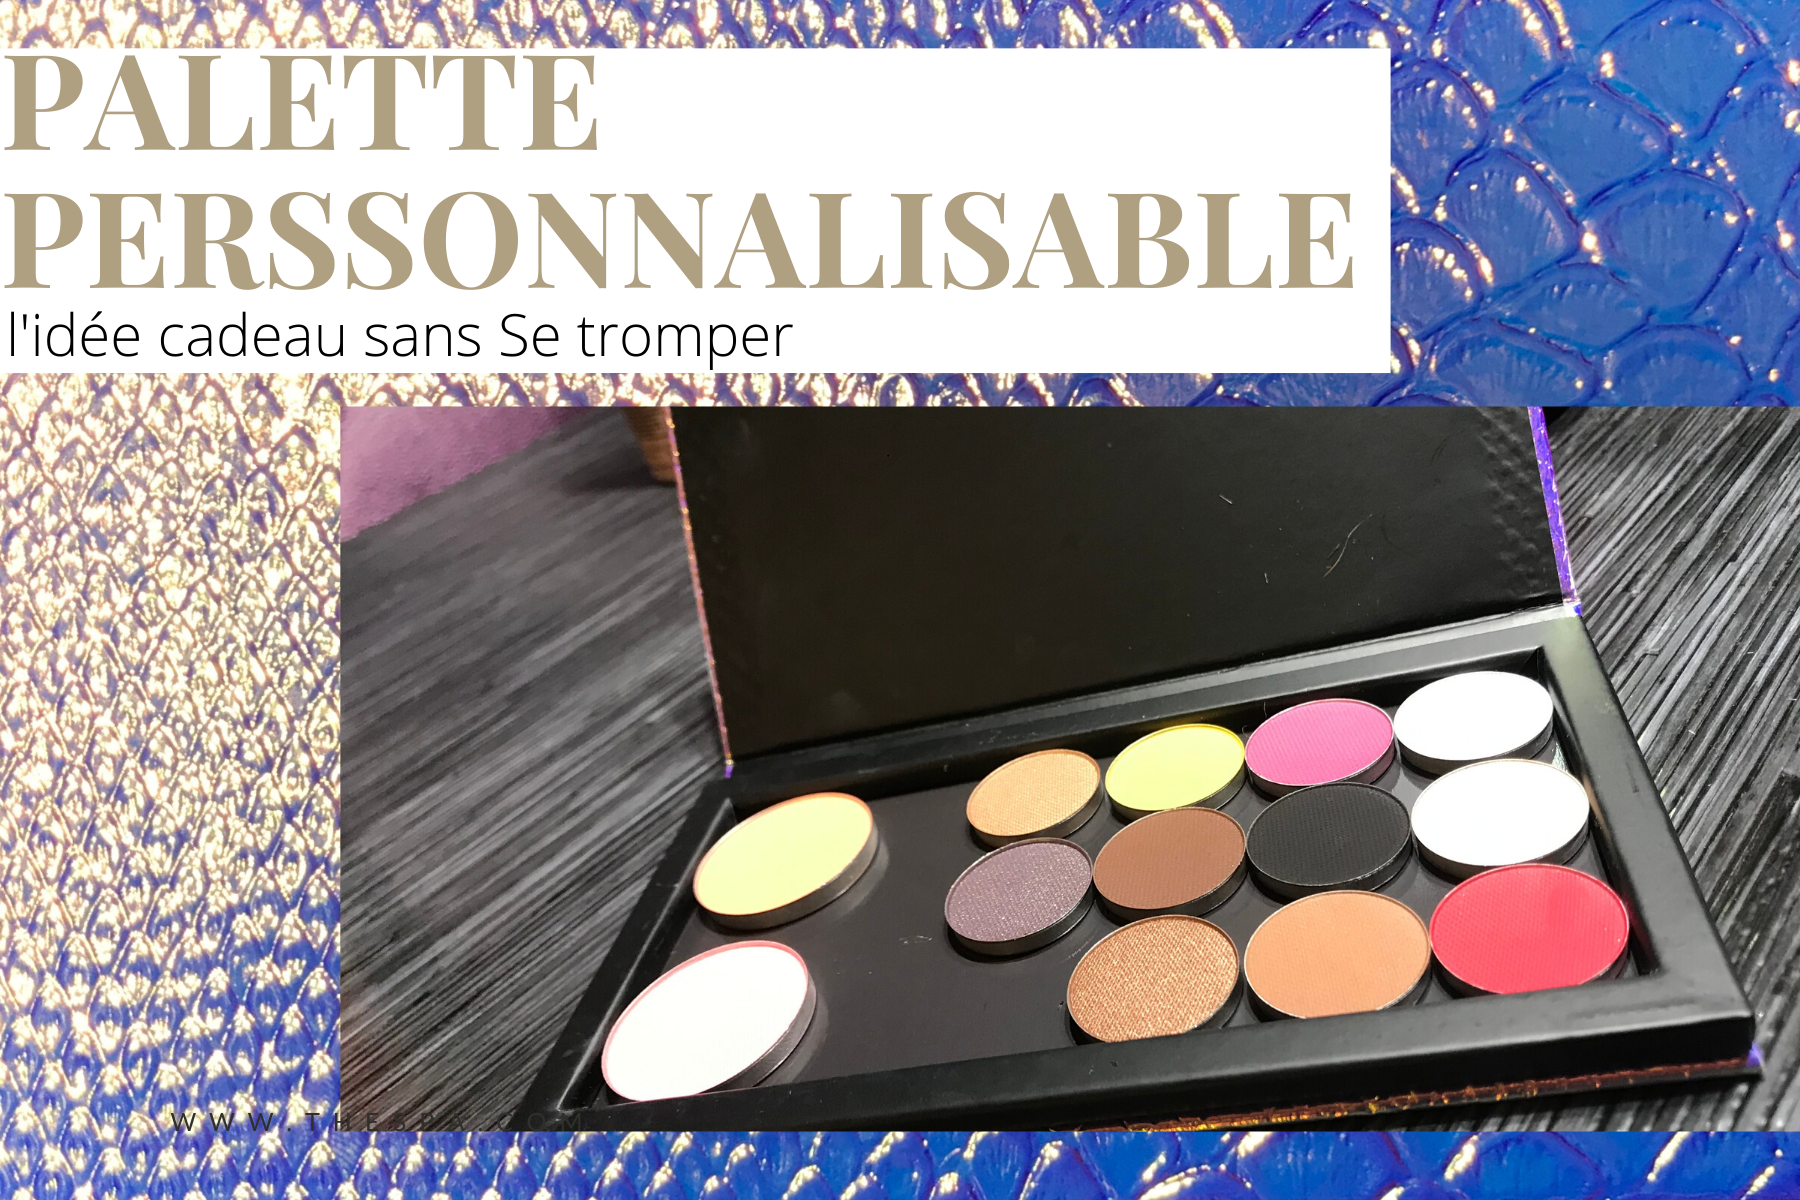 Copie de palette perssonnalisable (1)